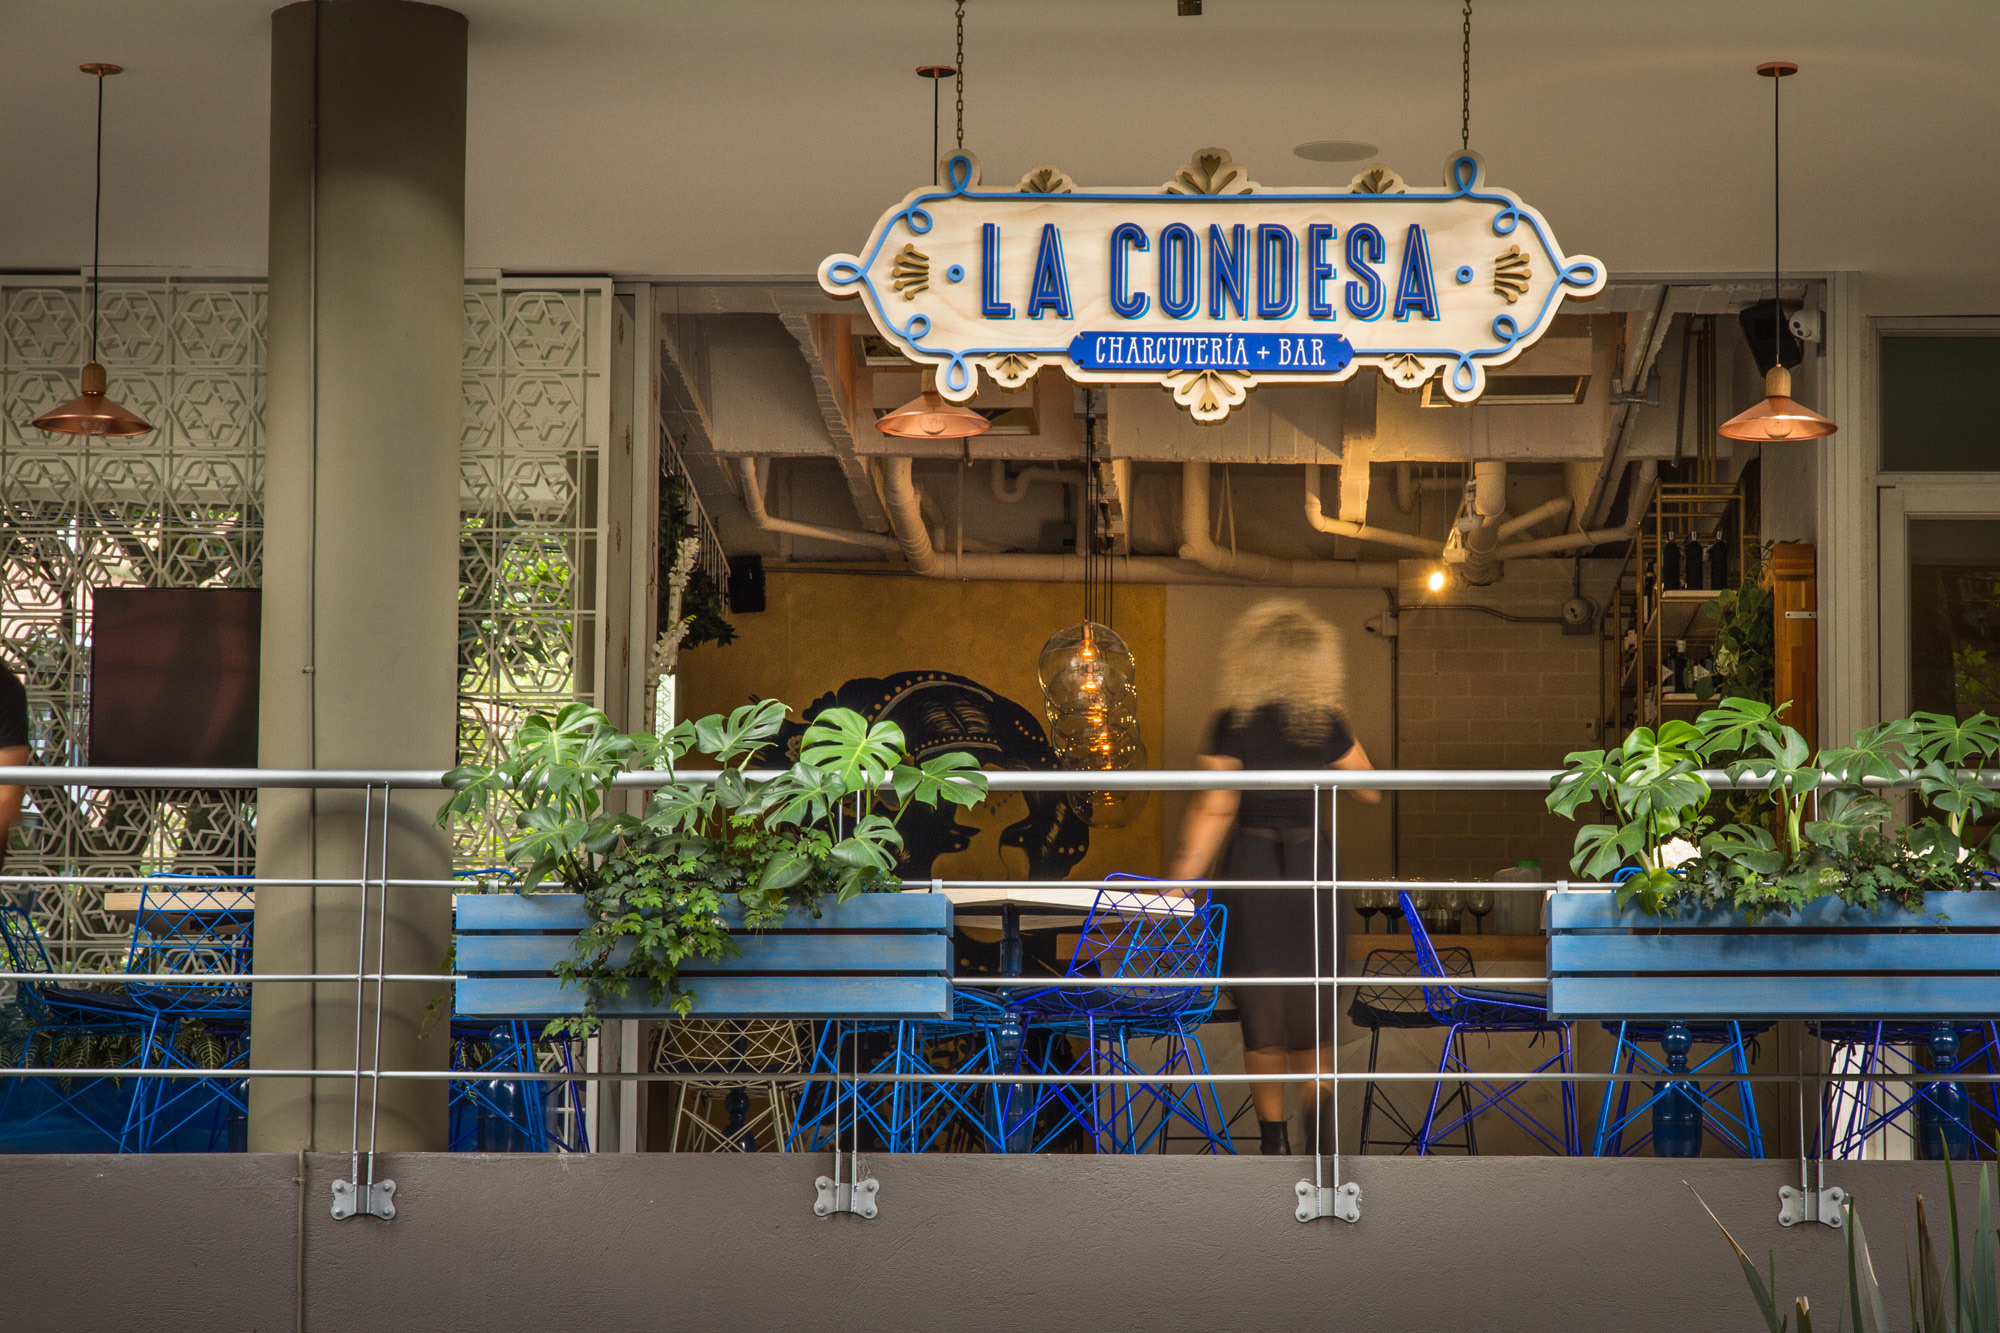 Interior Design for La Condesa. Designed by Plasma Nodo @enviromeant.com